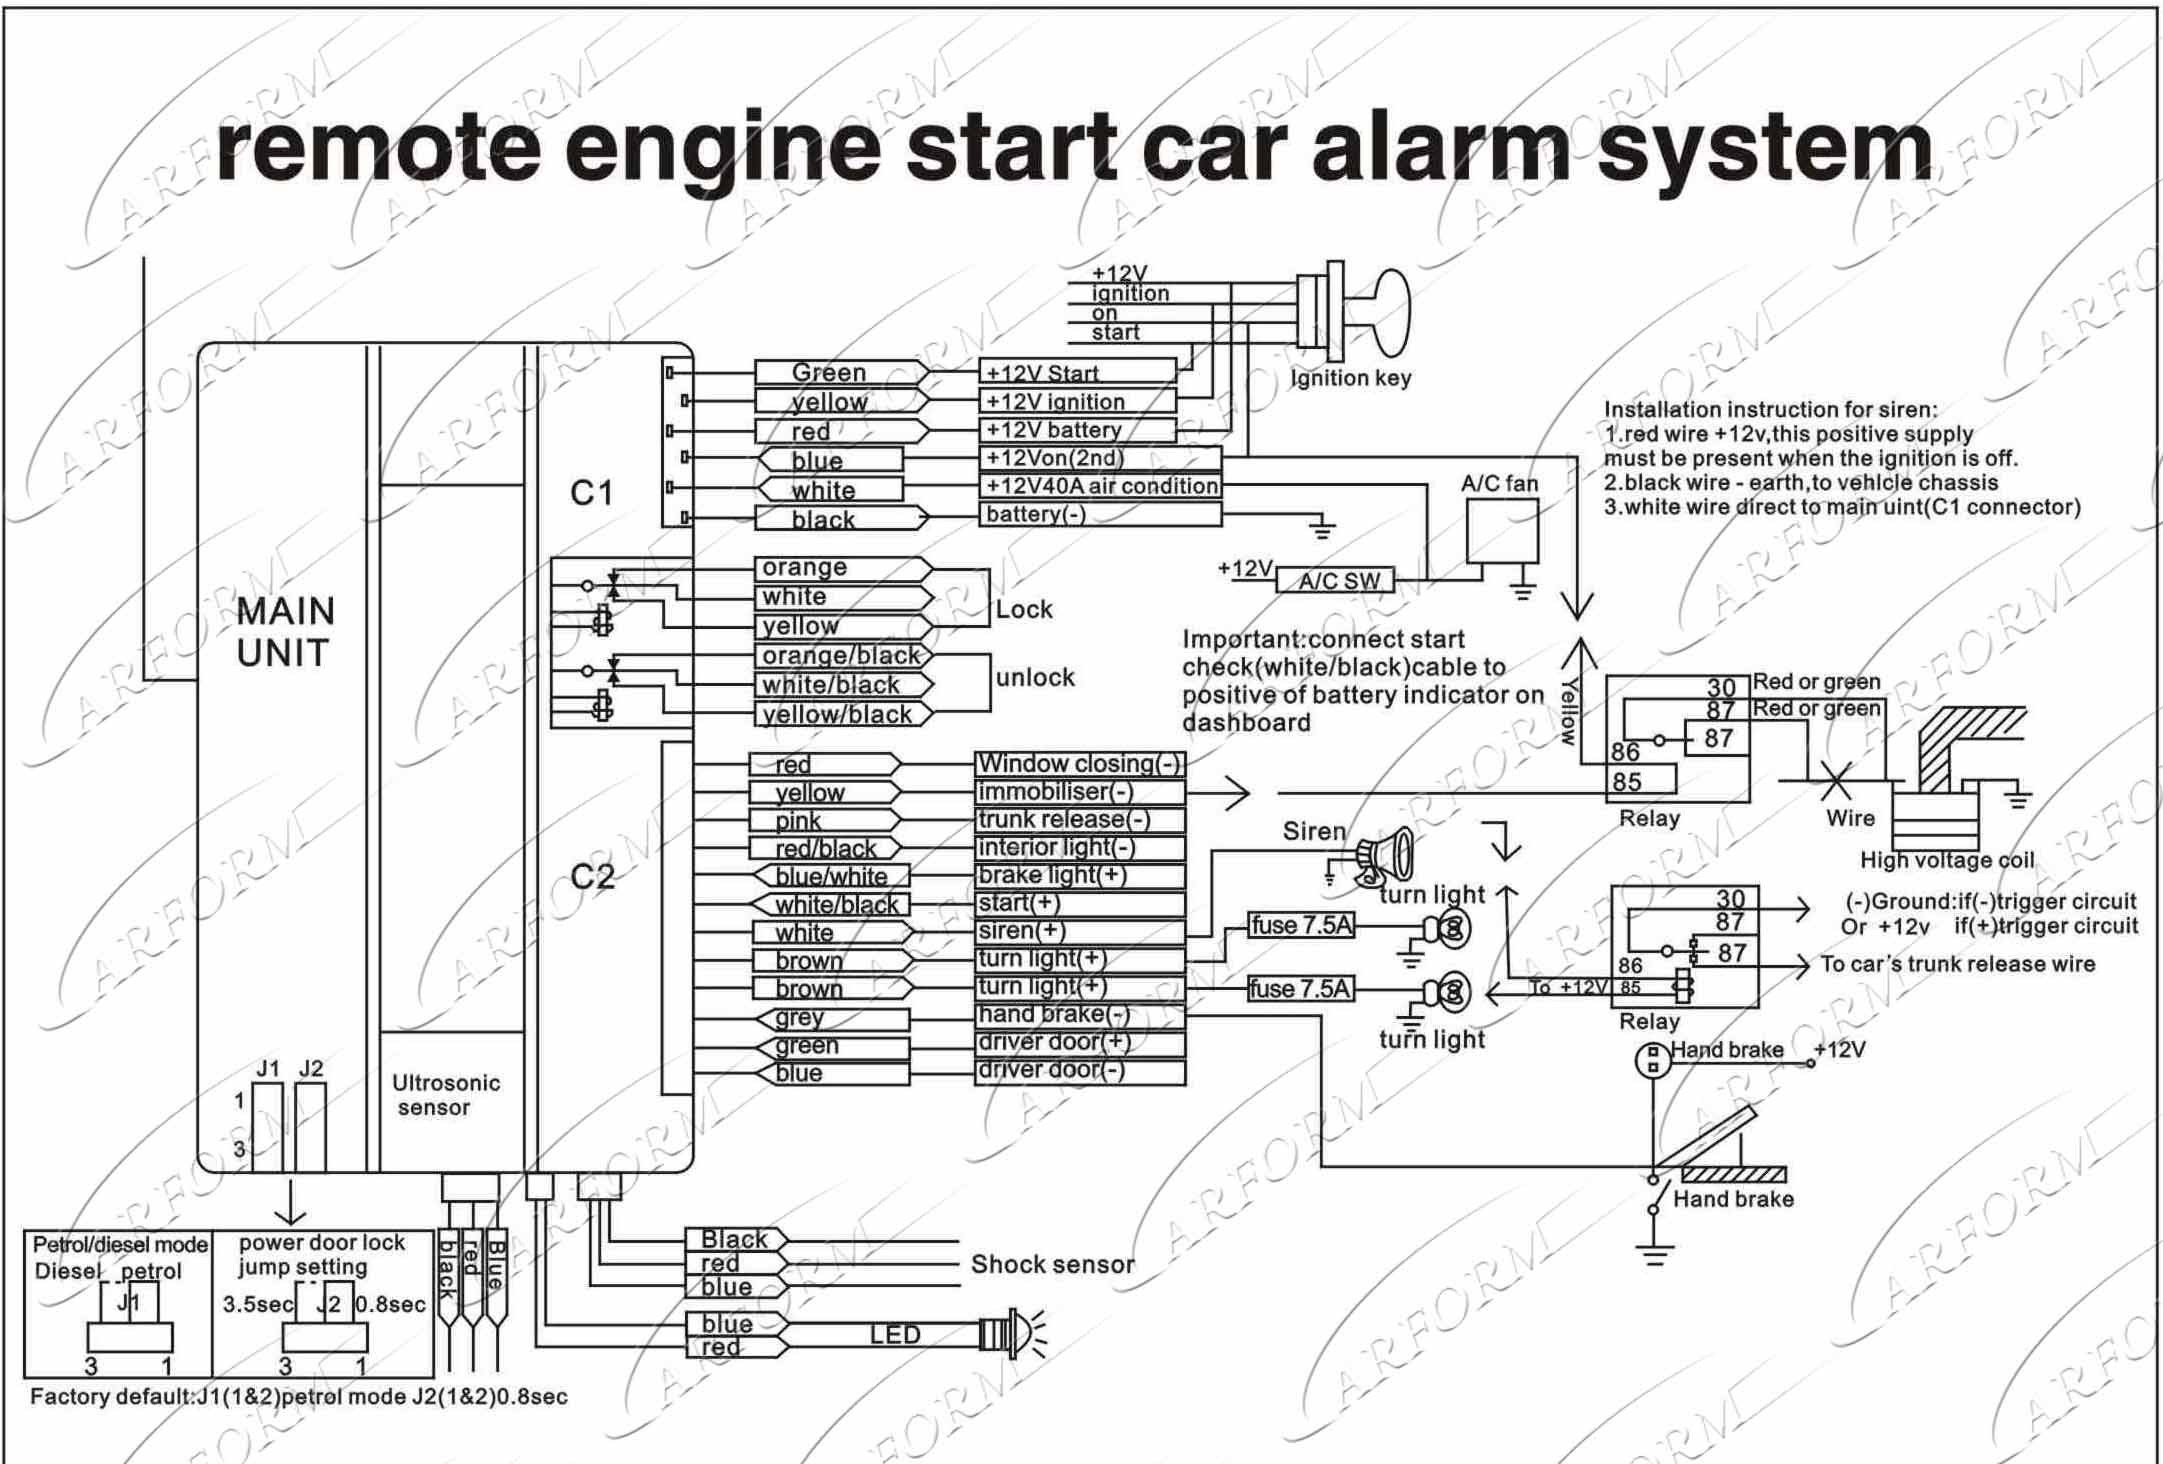 Viper 300 Wiring Diagram | Wiring Diagram on viper 560xv wiring-diagram, viper 350 hv wiring-diagram, viper 5000 install manual, viper 5701 manual diagram, viper 5901 wiring-diagram, viper 300 installation guide, viper 5704v remote start diagram, viper meme making fun of, viper 5701 wiring-diagram, viper 3002 installation guide, viper 550 esp wiring-diagram, viper model 300 manual, viper 4103 wiring-diagram, viper 4204 install guide pdf, viper 5101 remote start wiring, viper alarm installation diagram, viper 3305v, viper auto security system model 300,